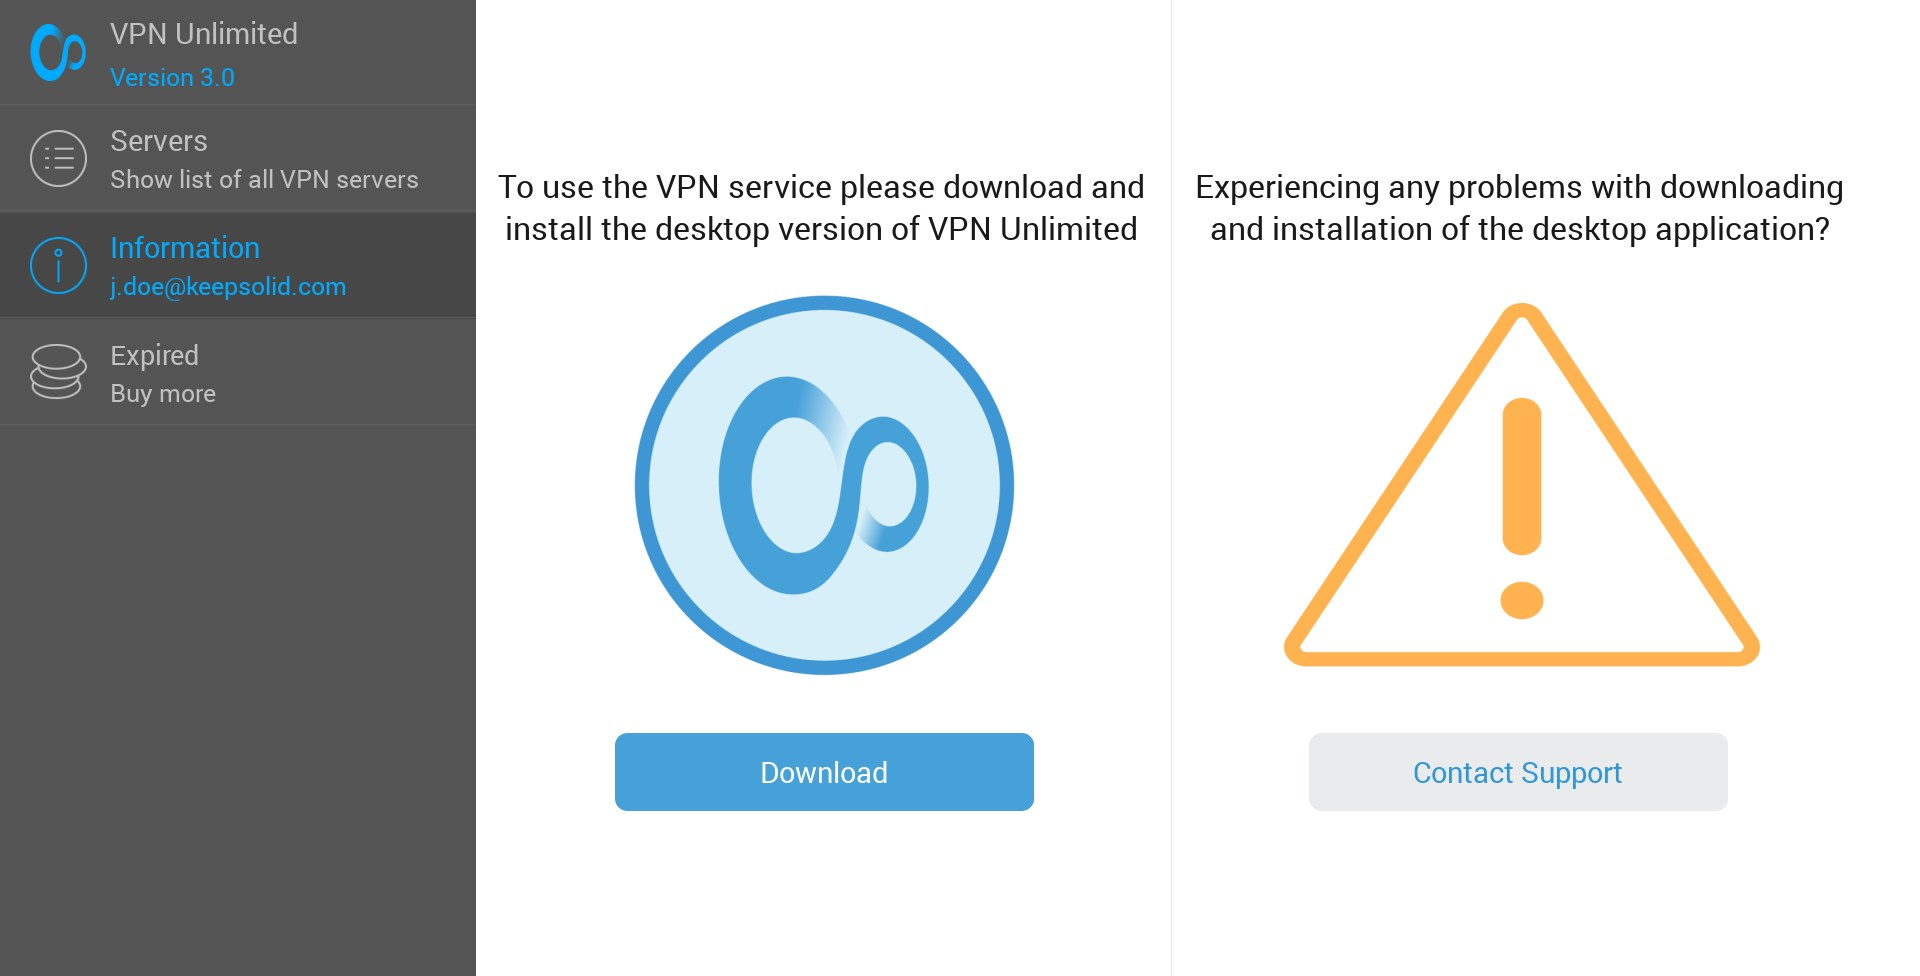 VPN Unlimited - Encrypted, Secure & Private Internet Connection for Anonymous Web Surfing